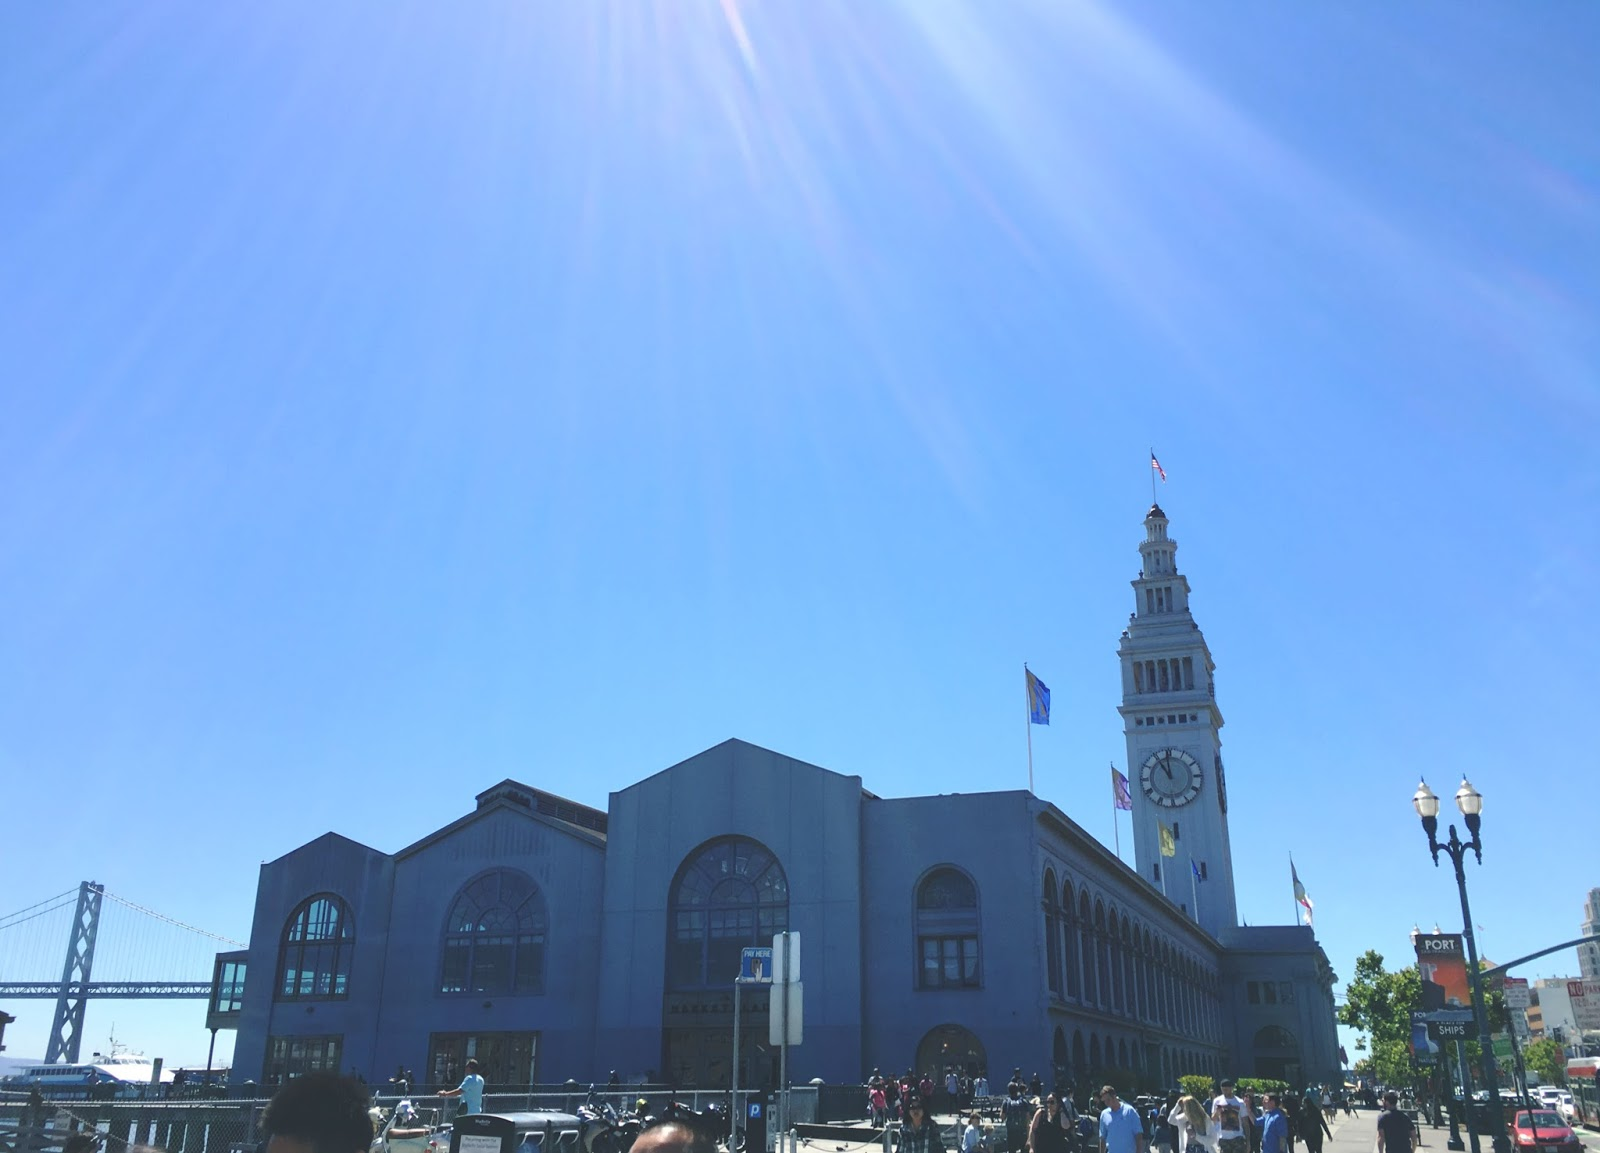 Ferry Building in San Francisco, California